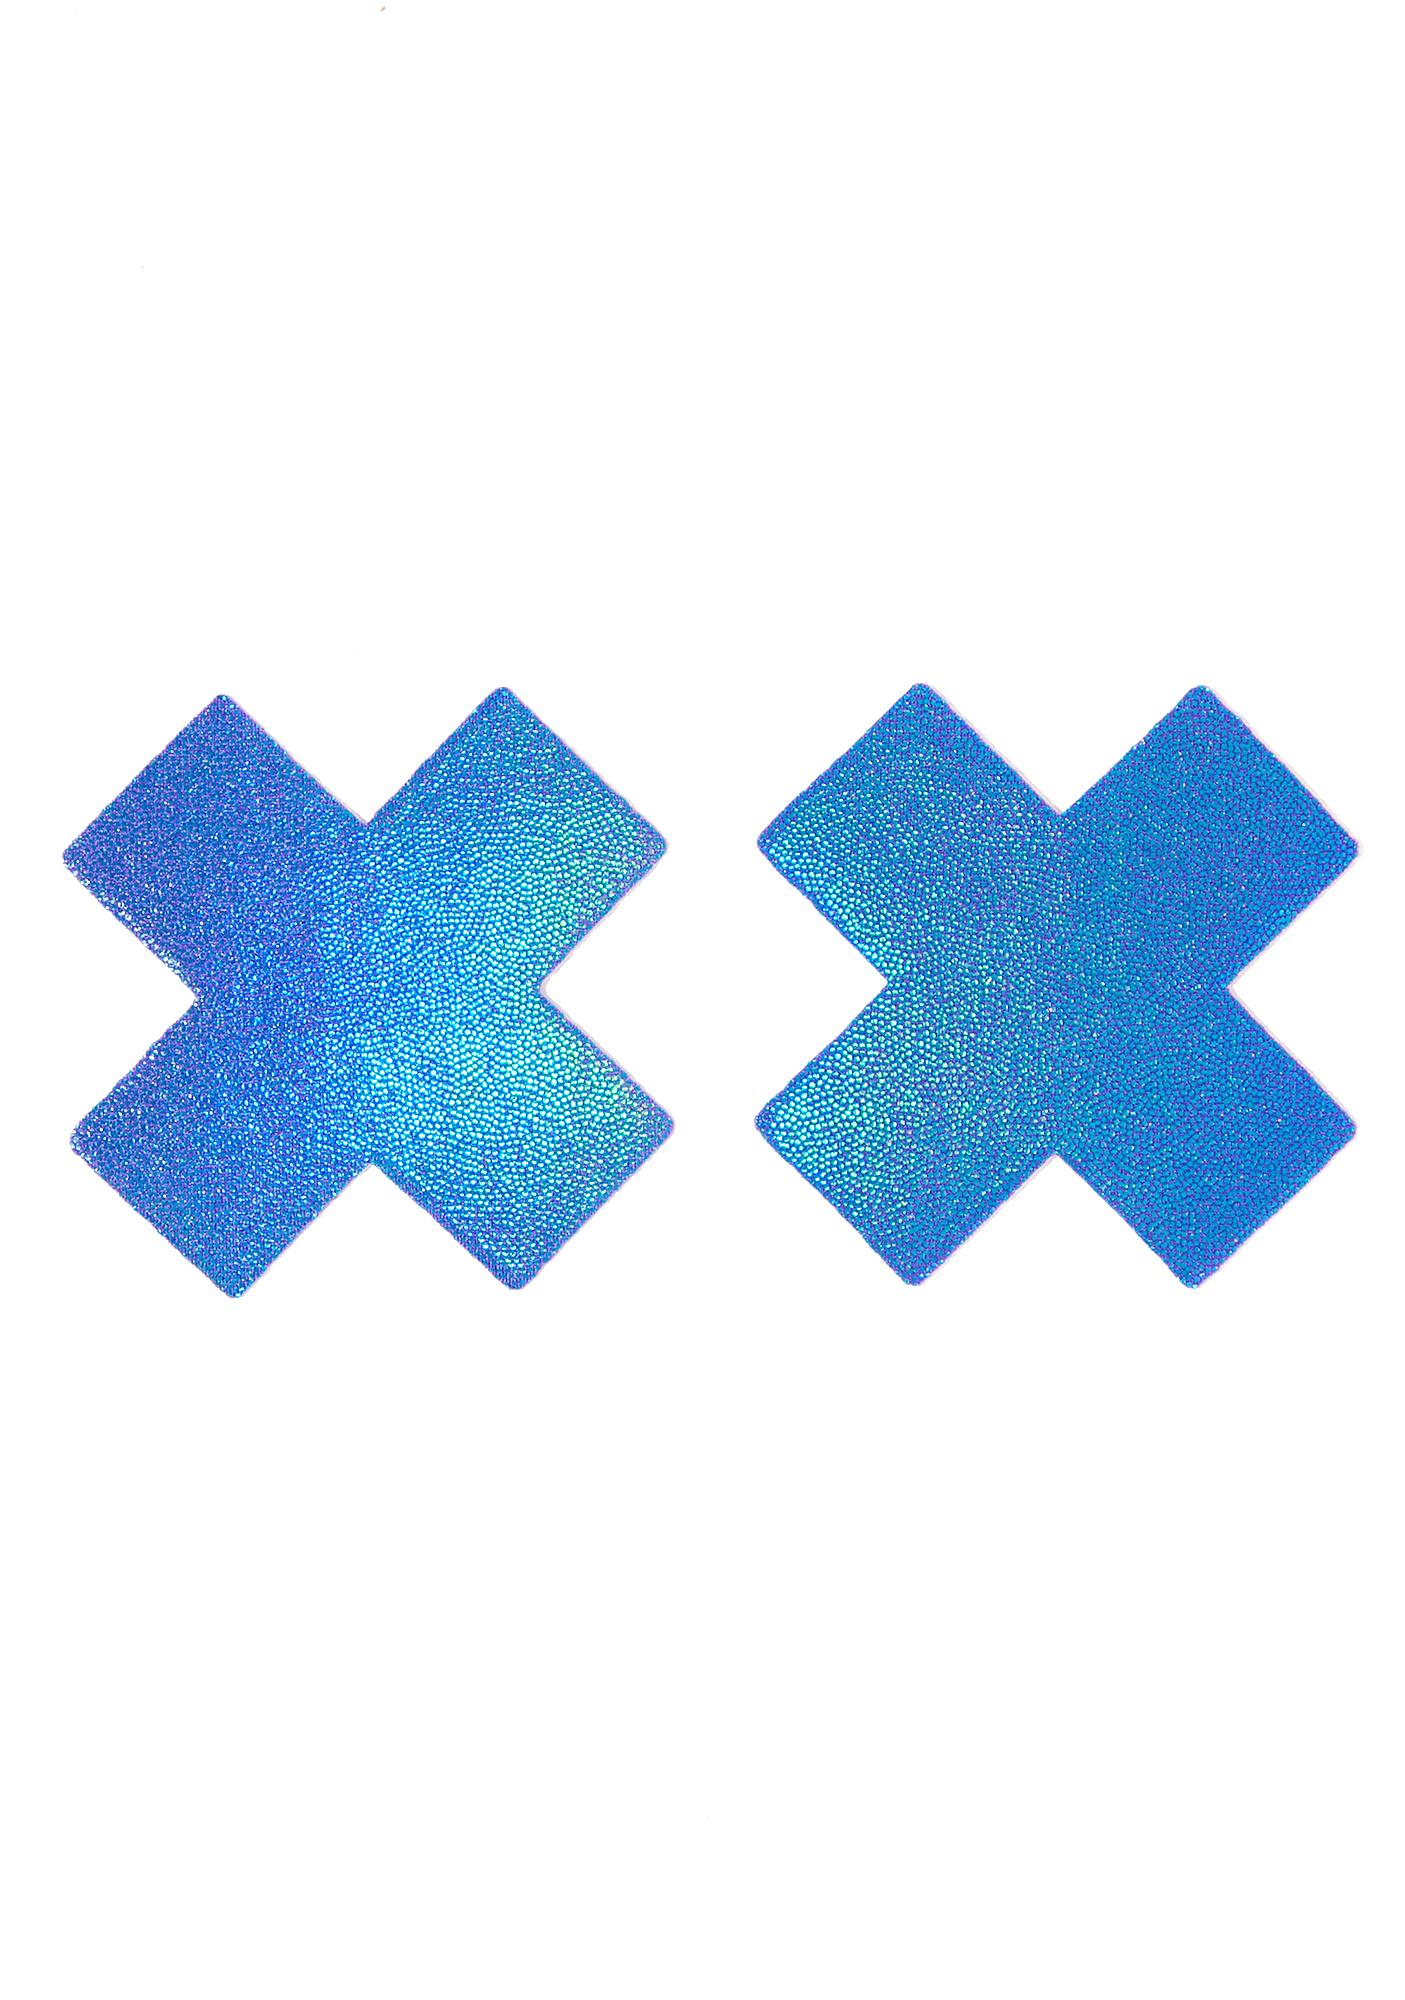 Pastease Shiny Blue Cross Pasties